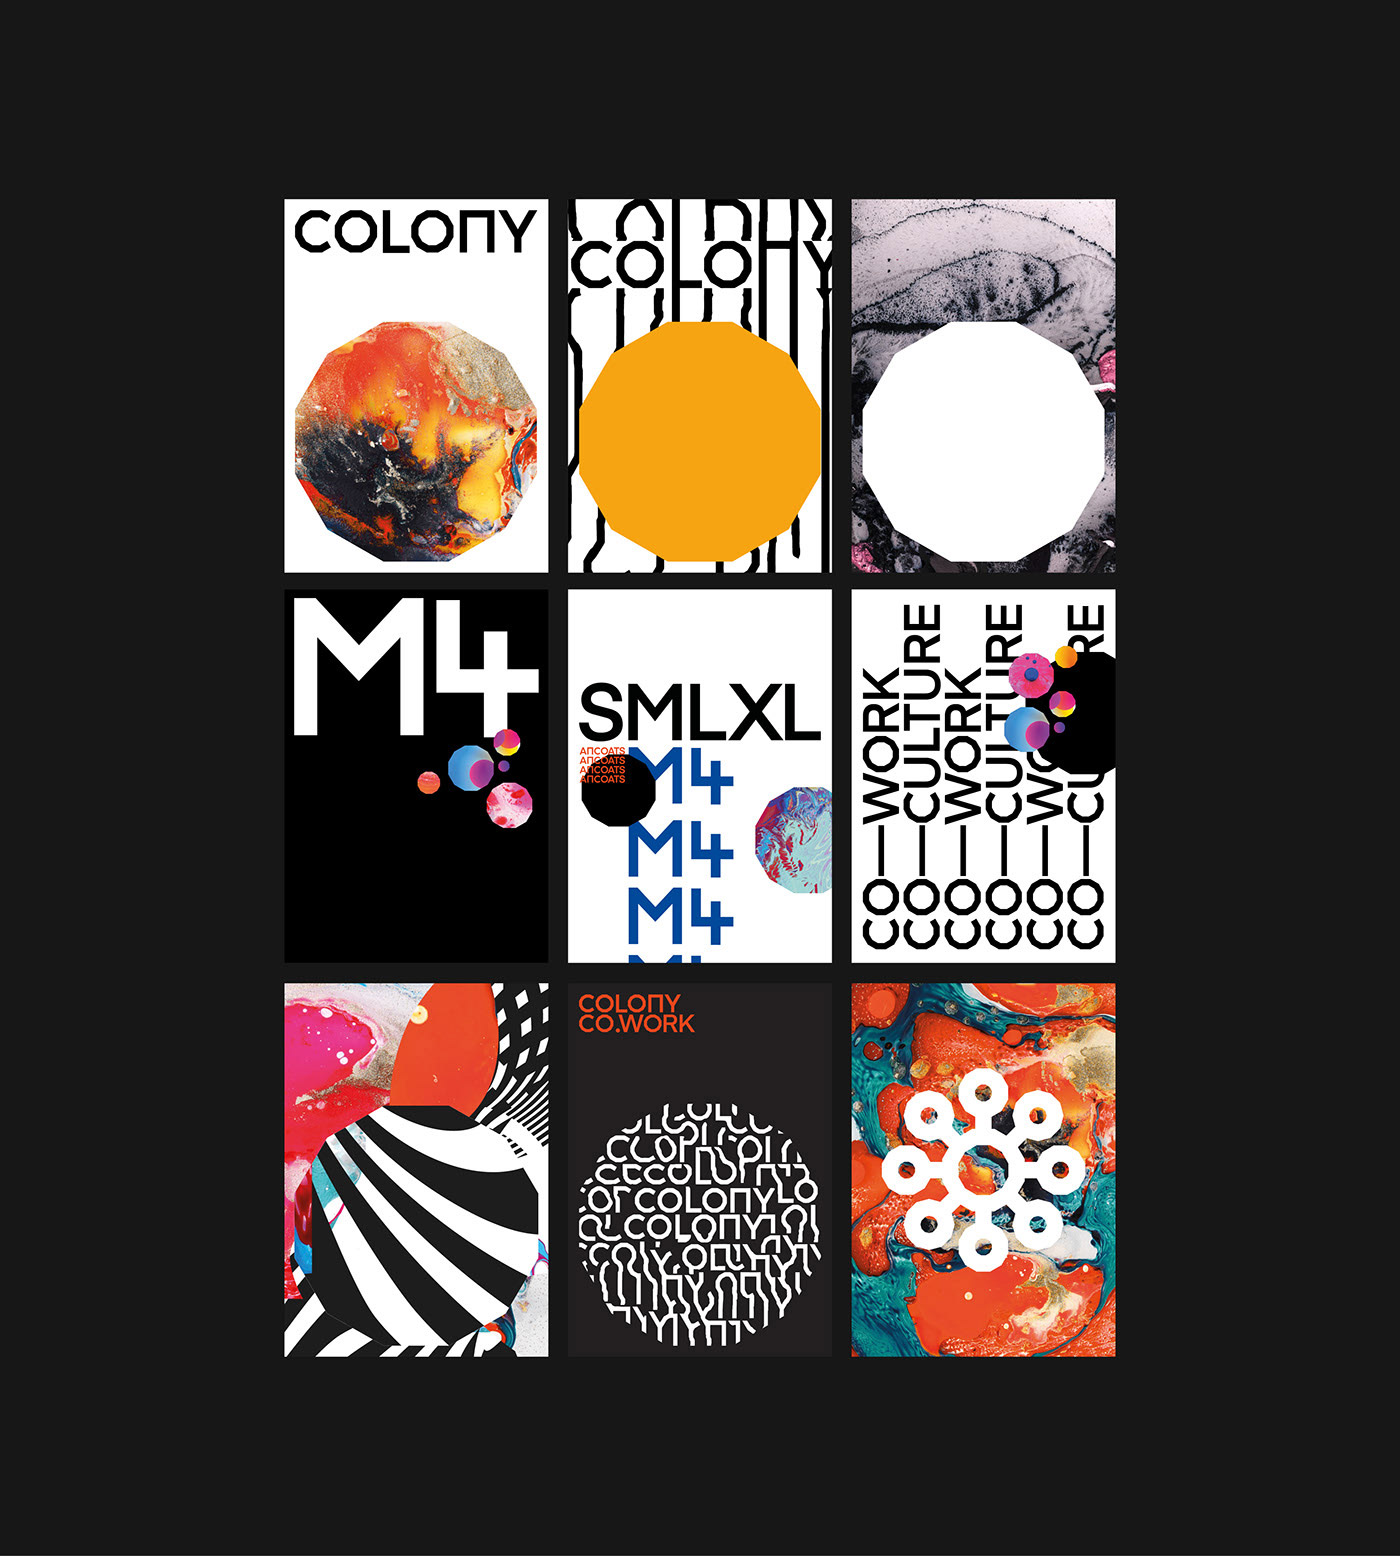 COLONY — Brand Identity & Implementation by Steven Waring and Martin James Power